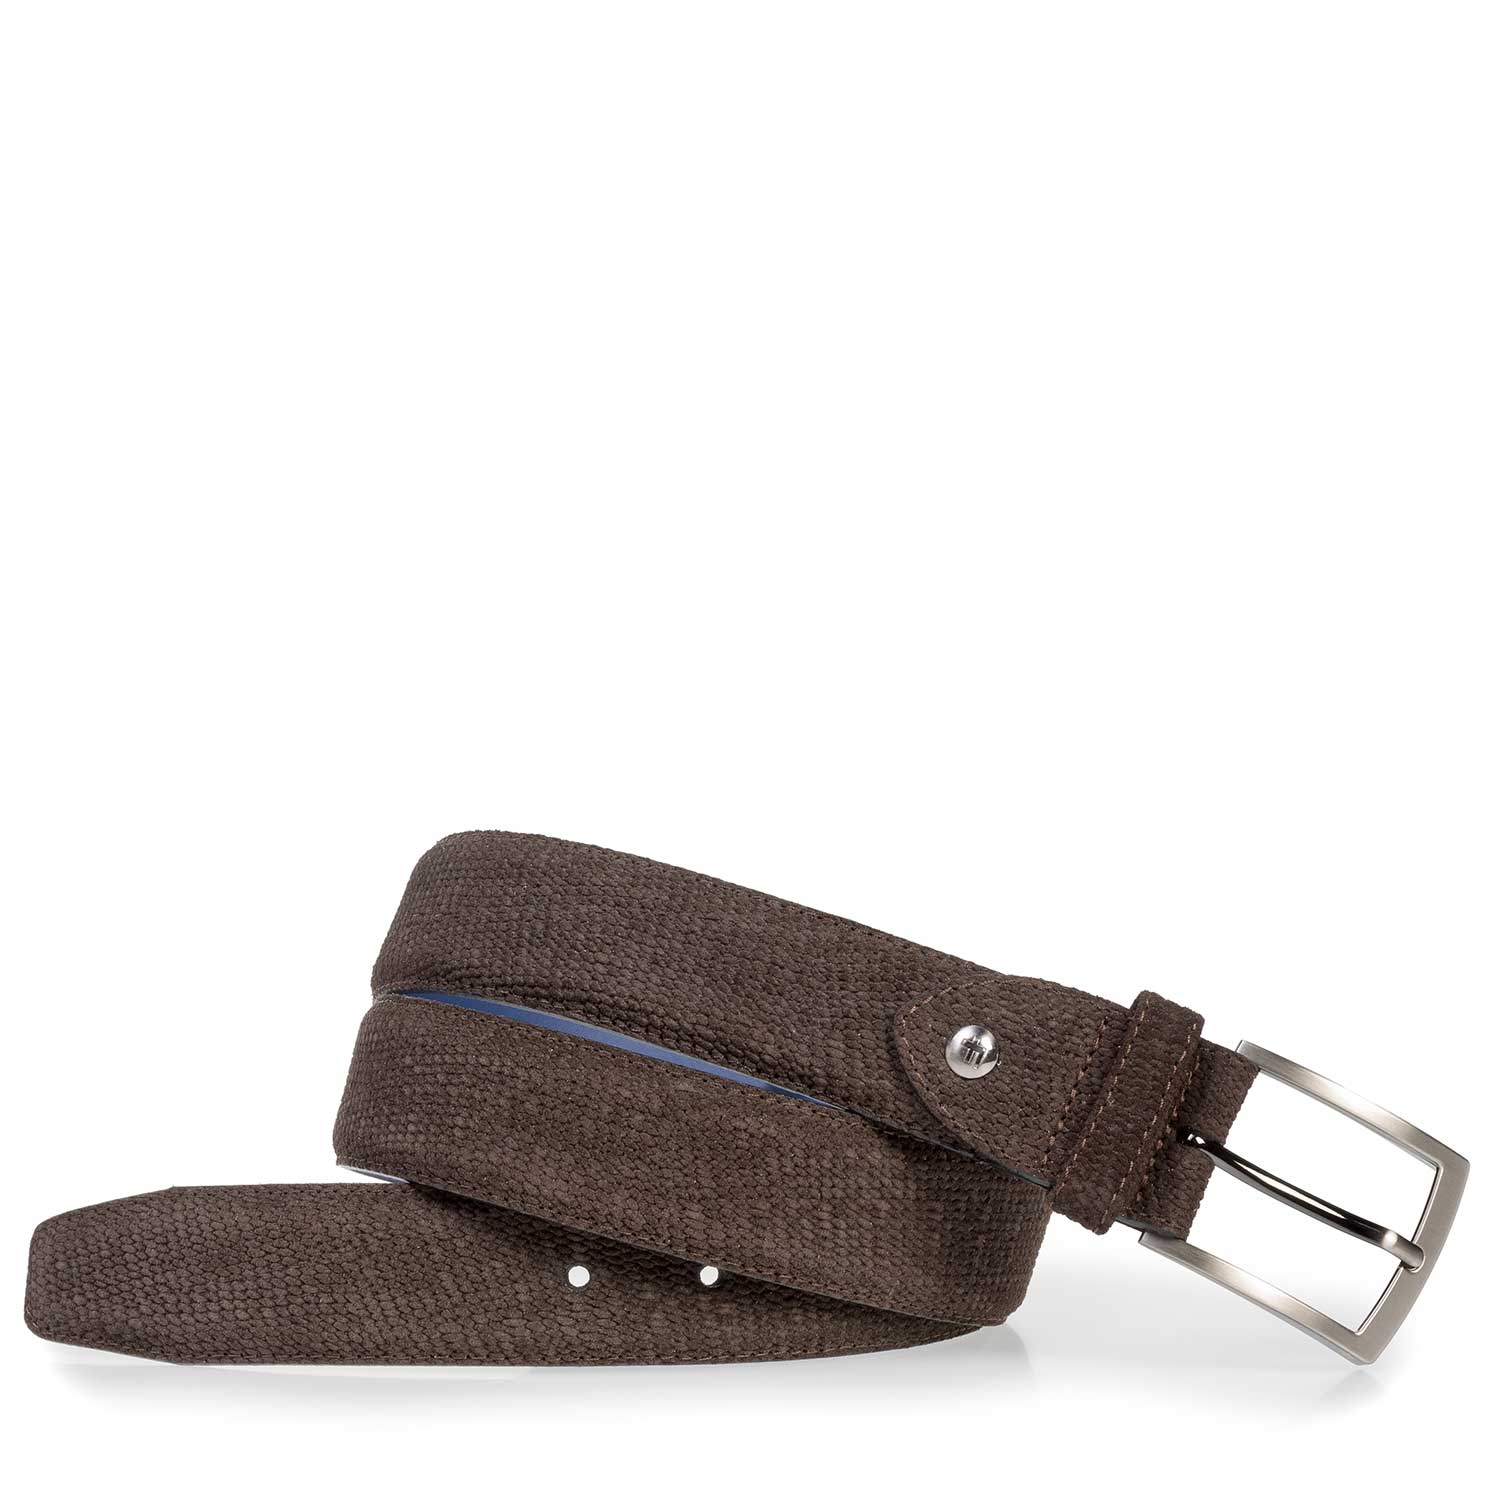 75201/56 - Dark brown suede leather belt with print